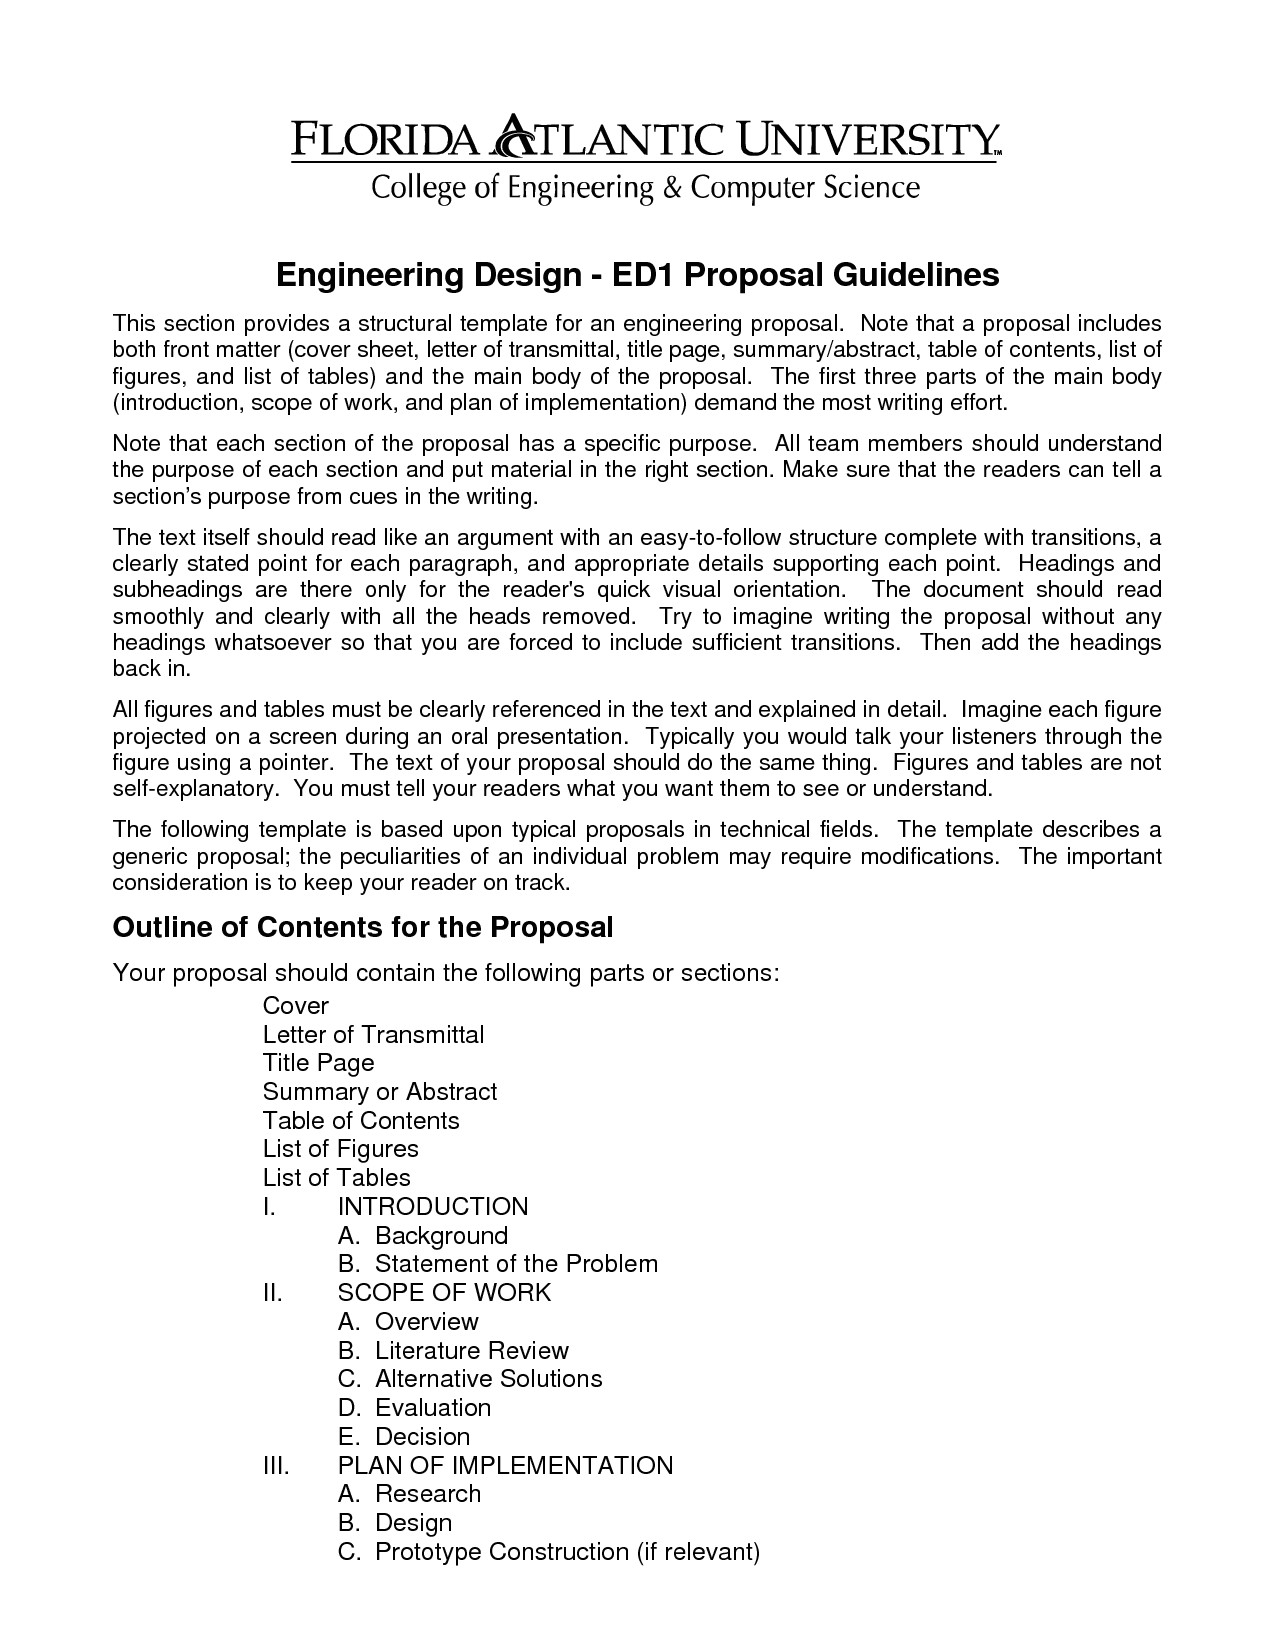 Structural Engineering Proposal Template 9 Best Images Of Structural Engineering Design Civil